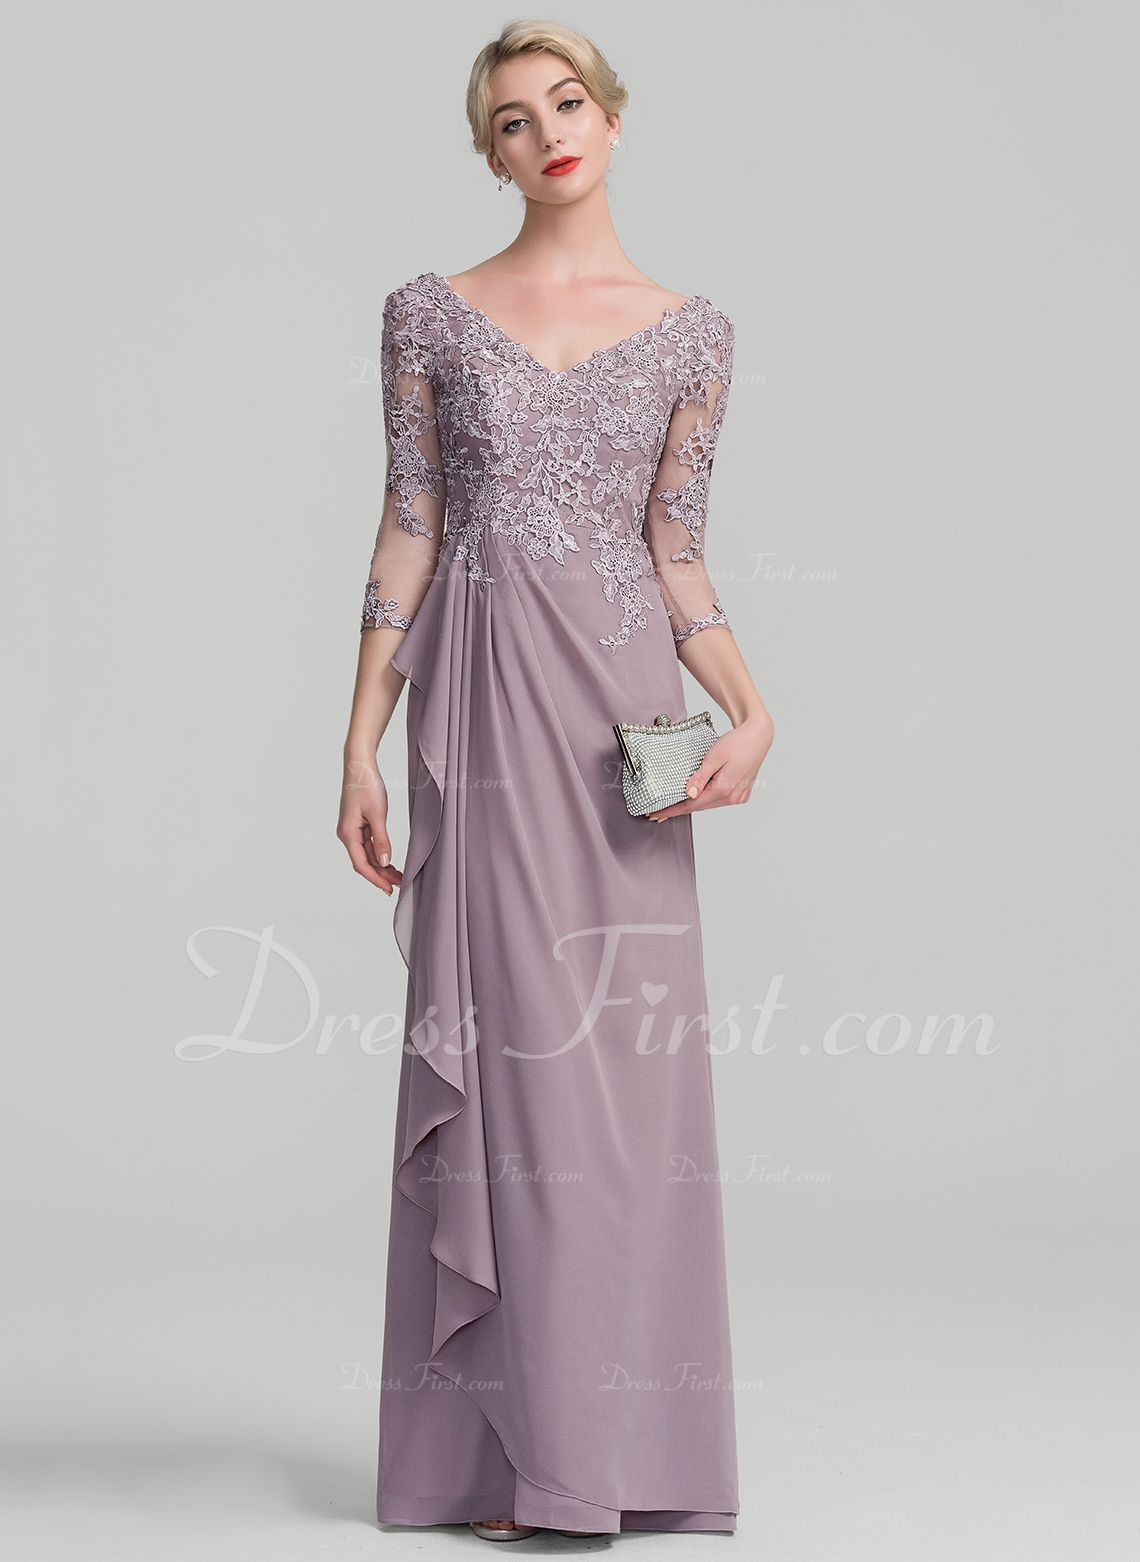 974df8664b8f1 A-Line/Princess V-neck Floor-Length Chiffon Lace Mother of the Bride Dress  With Beading Sequins Cascading Ruffles (008114240)